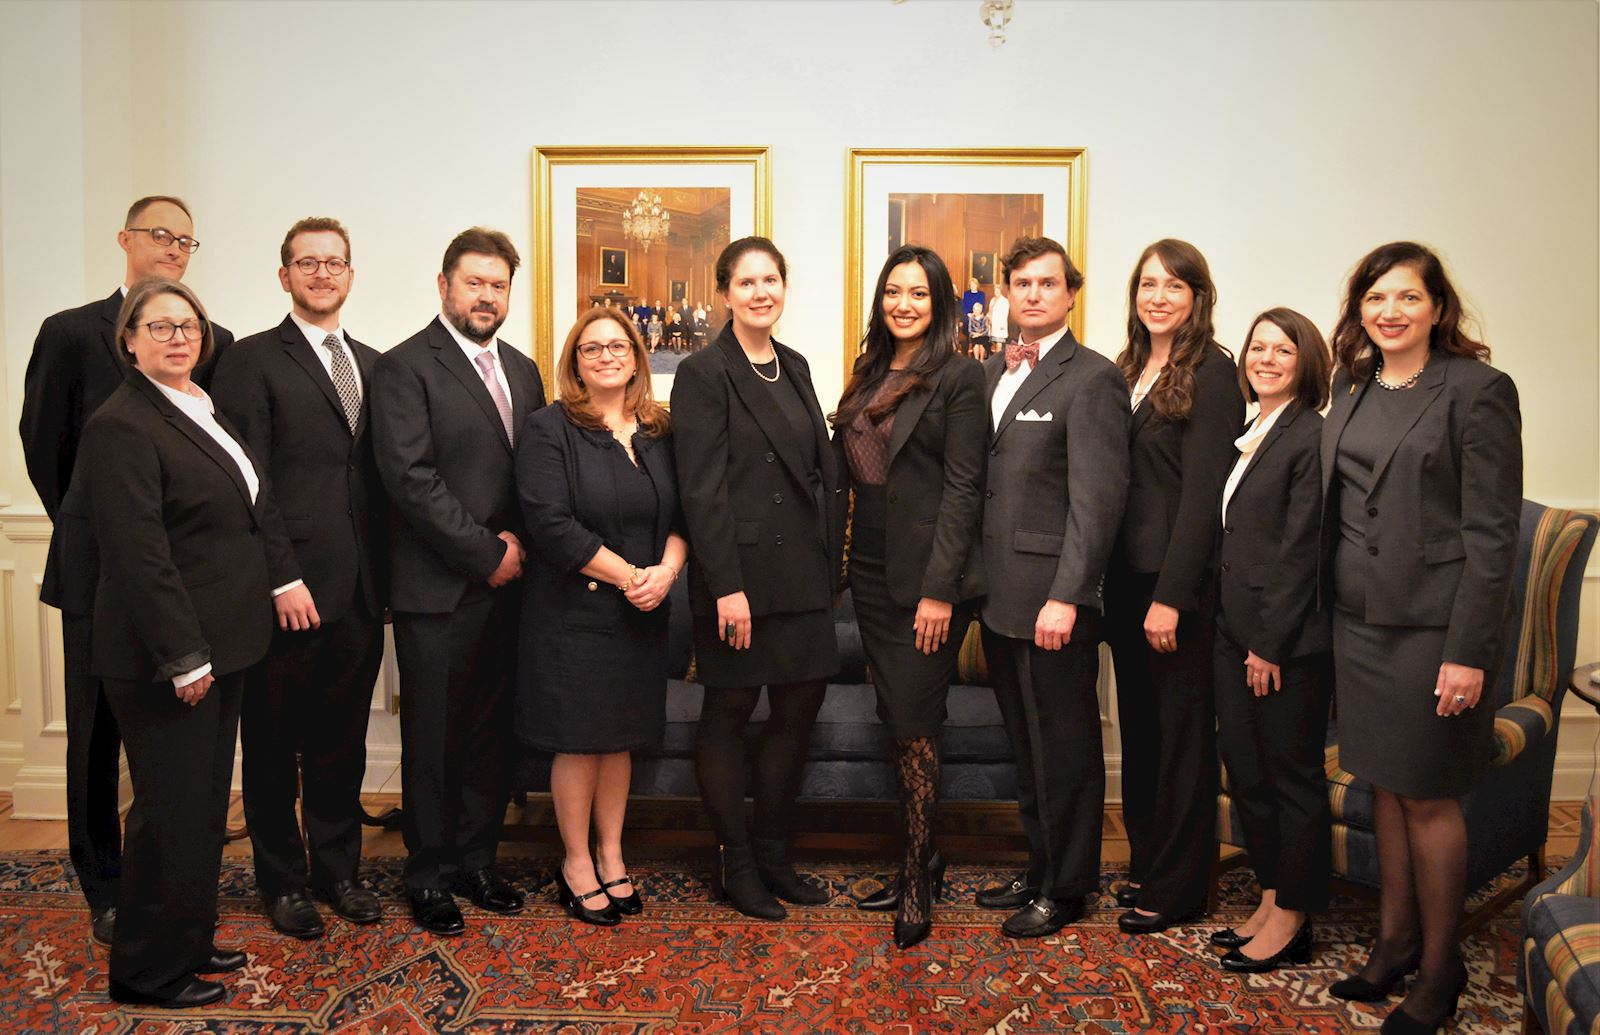 Michael Sabella (third from left) and the rest of the DHHBA members sworn in to the U.S. Supreme Court Bar.